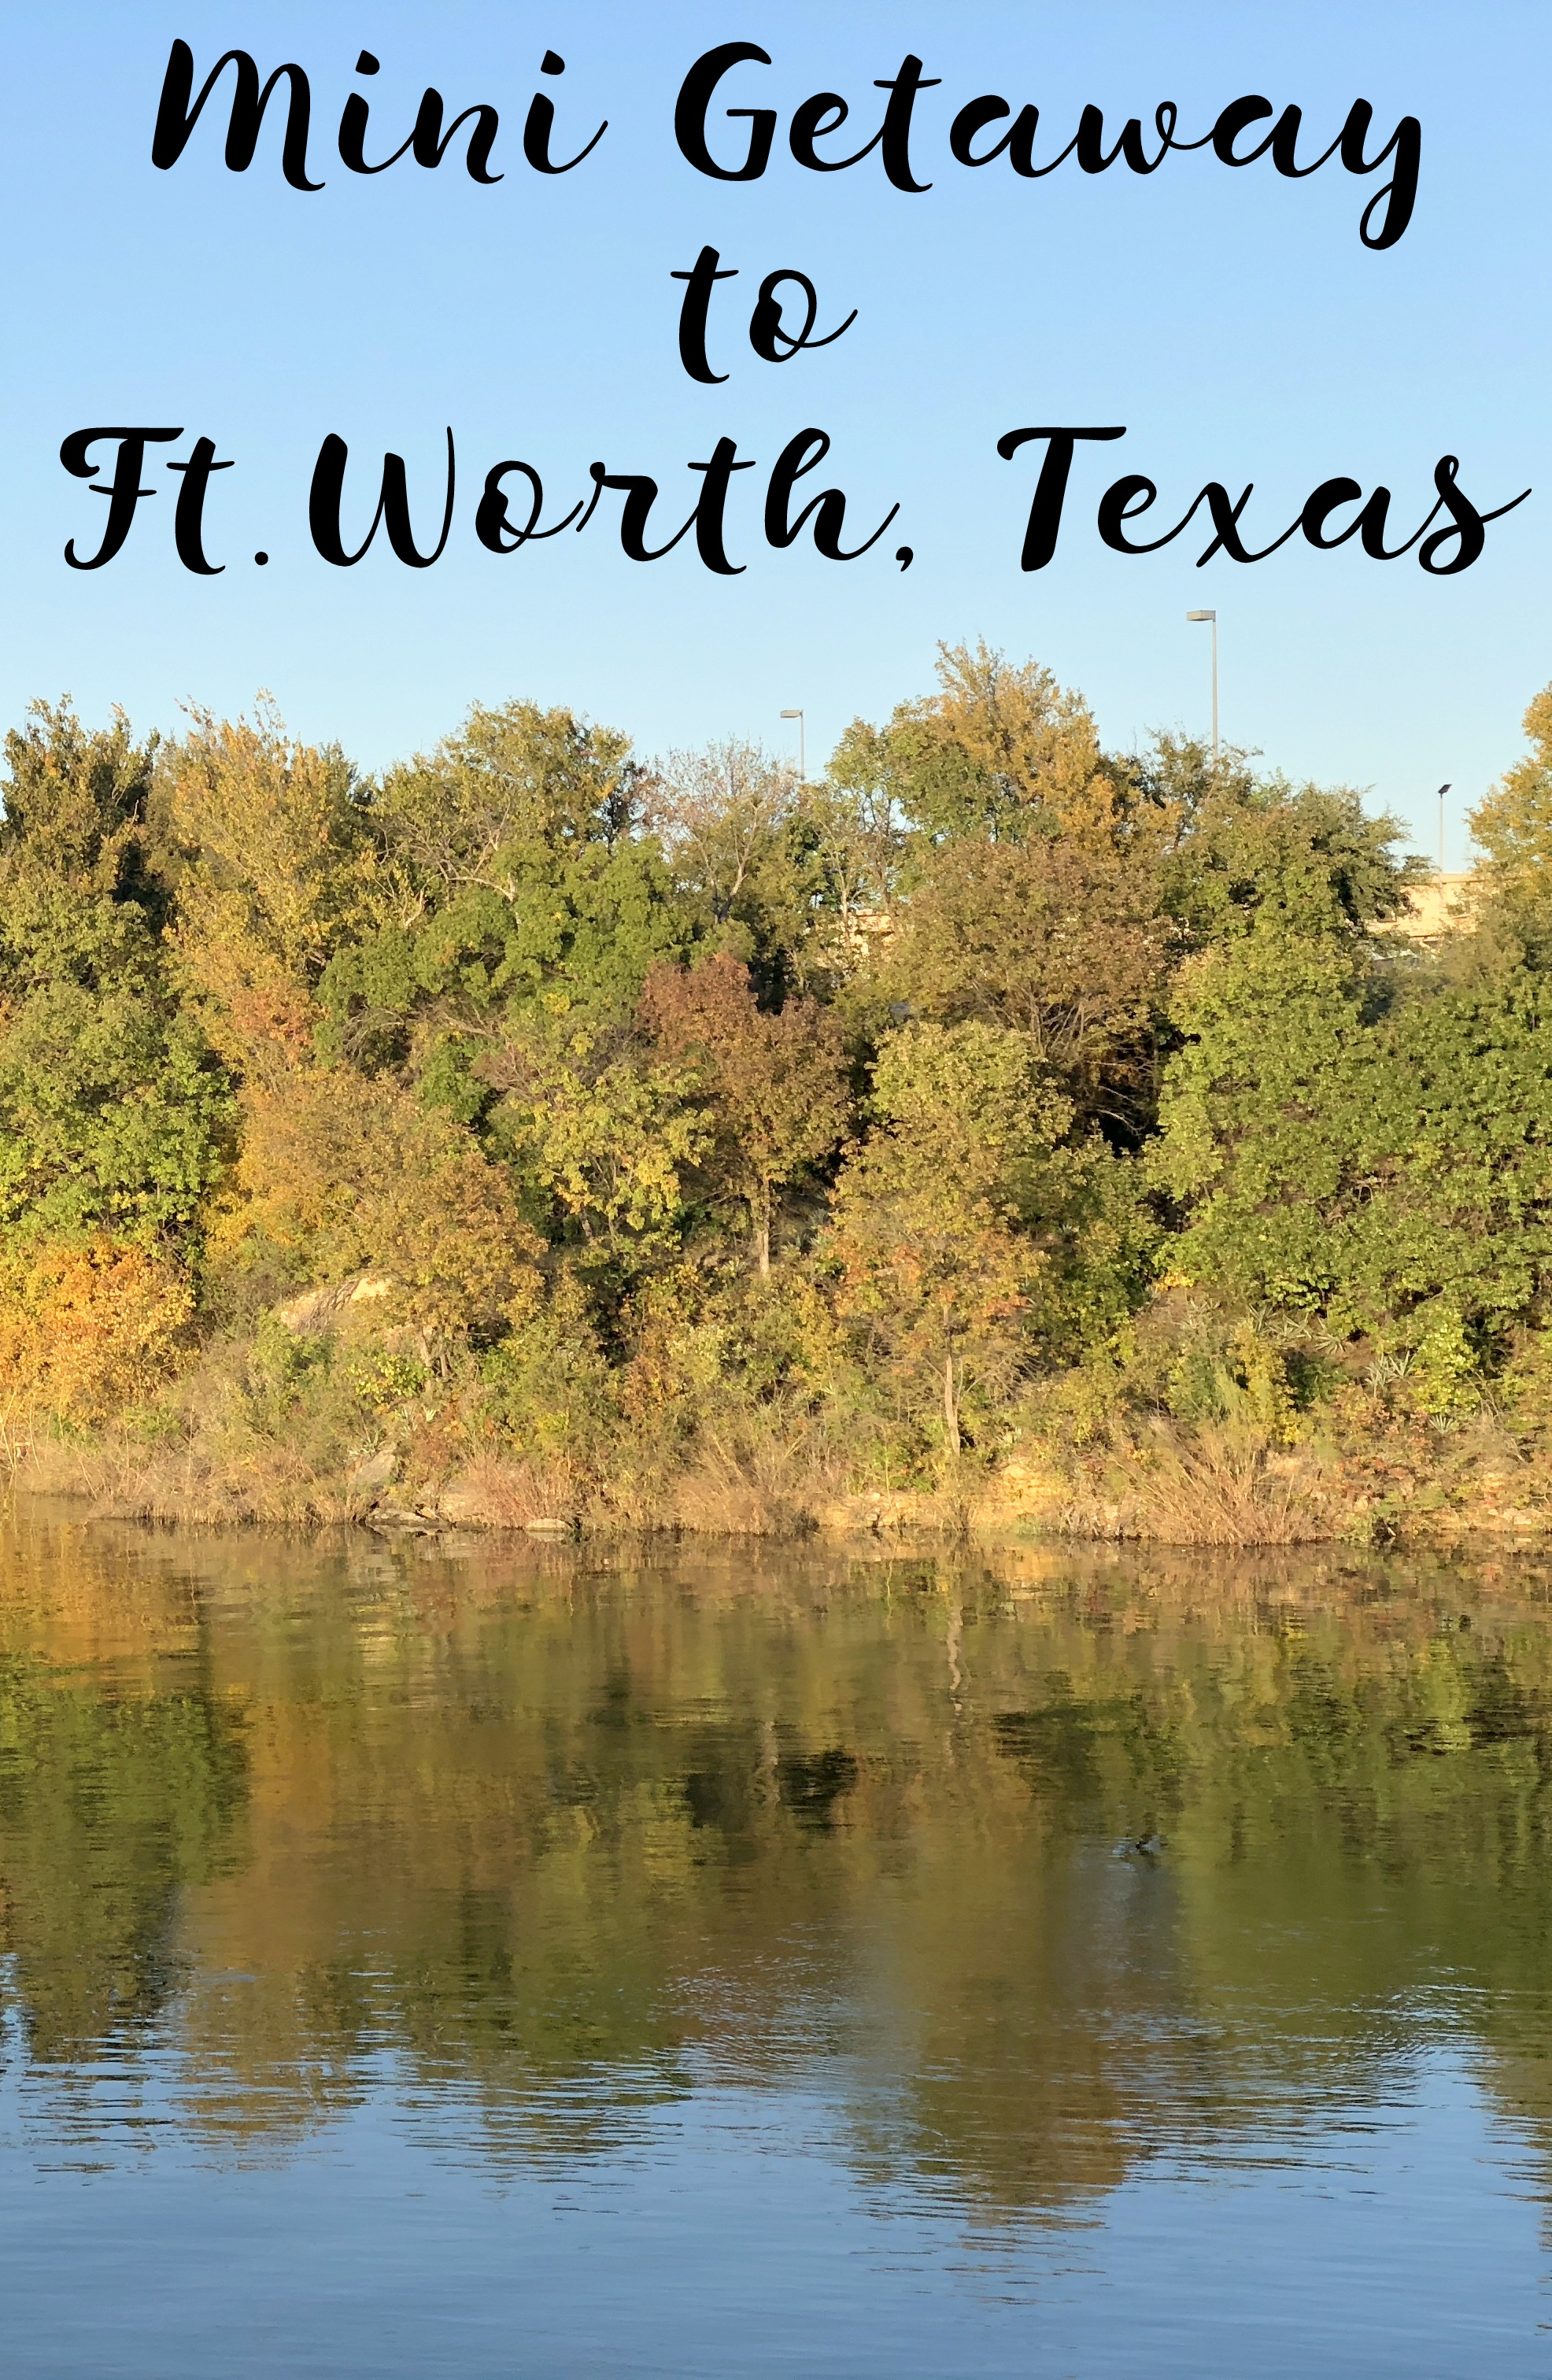 https://www.in-due-time.com/travel/mini-getaway-to-ft-worth-texas/